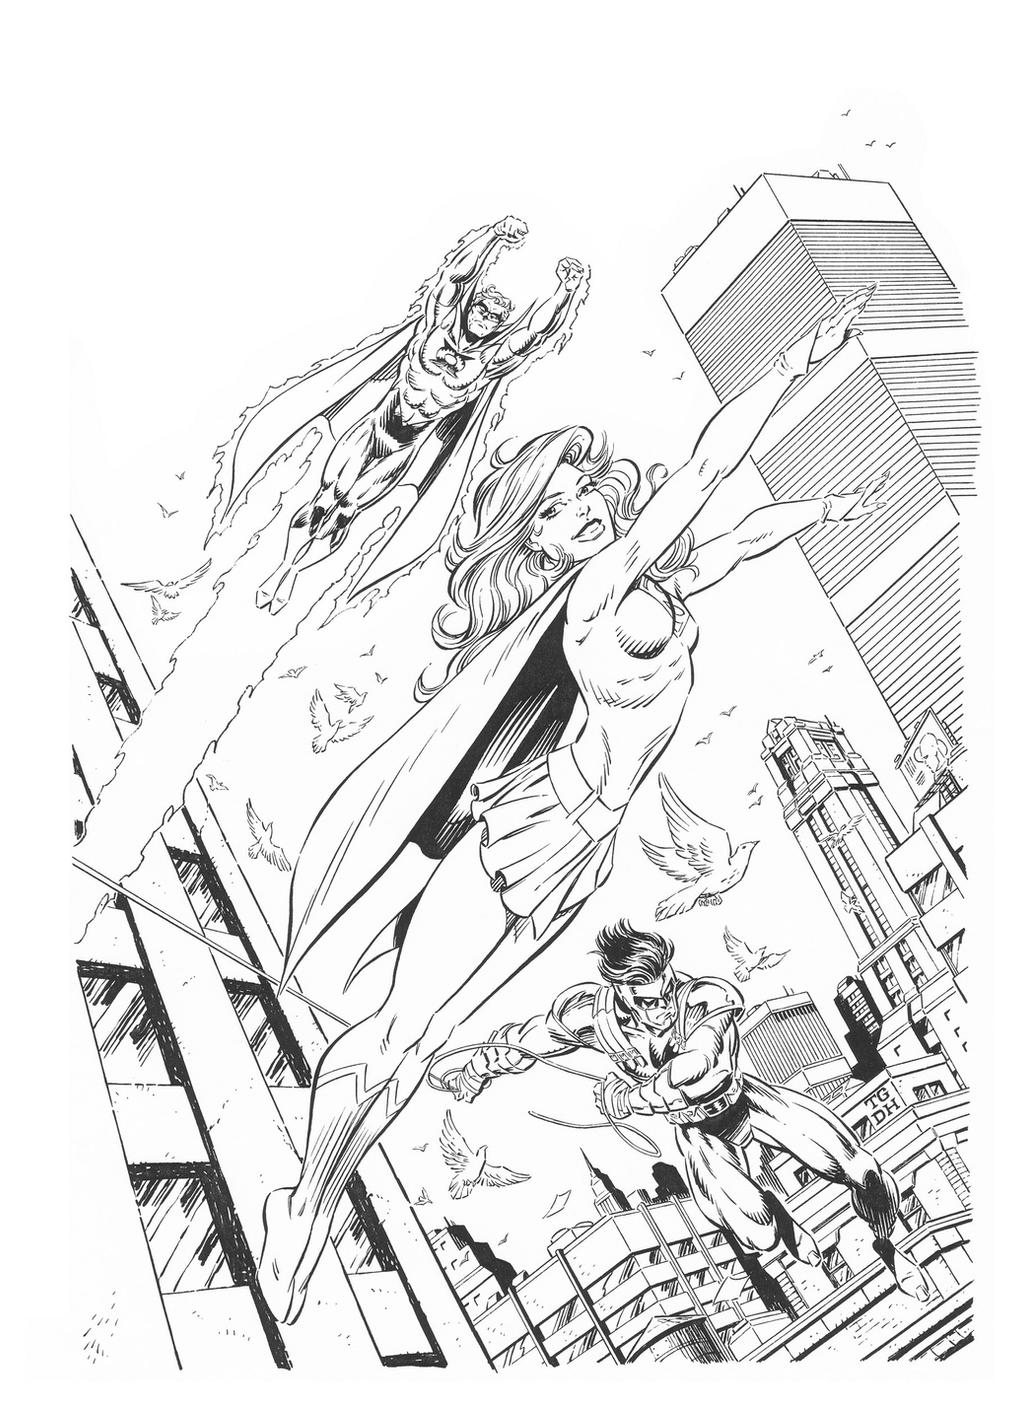 SHOWCASE '95 #1 Cover Art SUPERGIRL - Grummett/DH by DRHazlewood